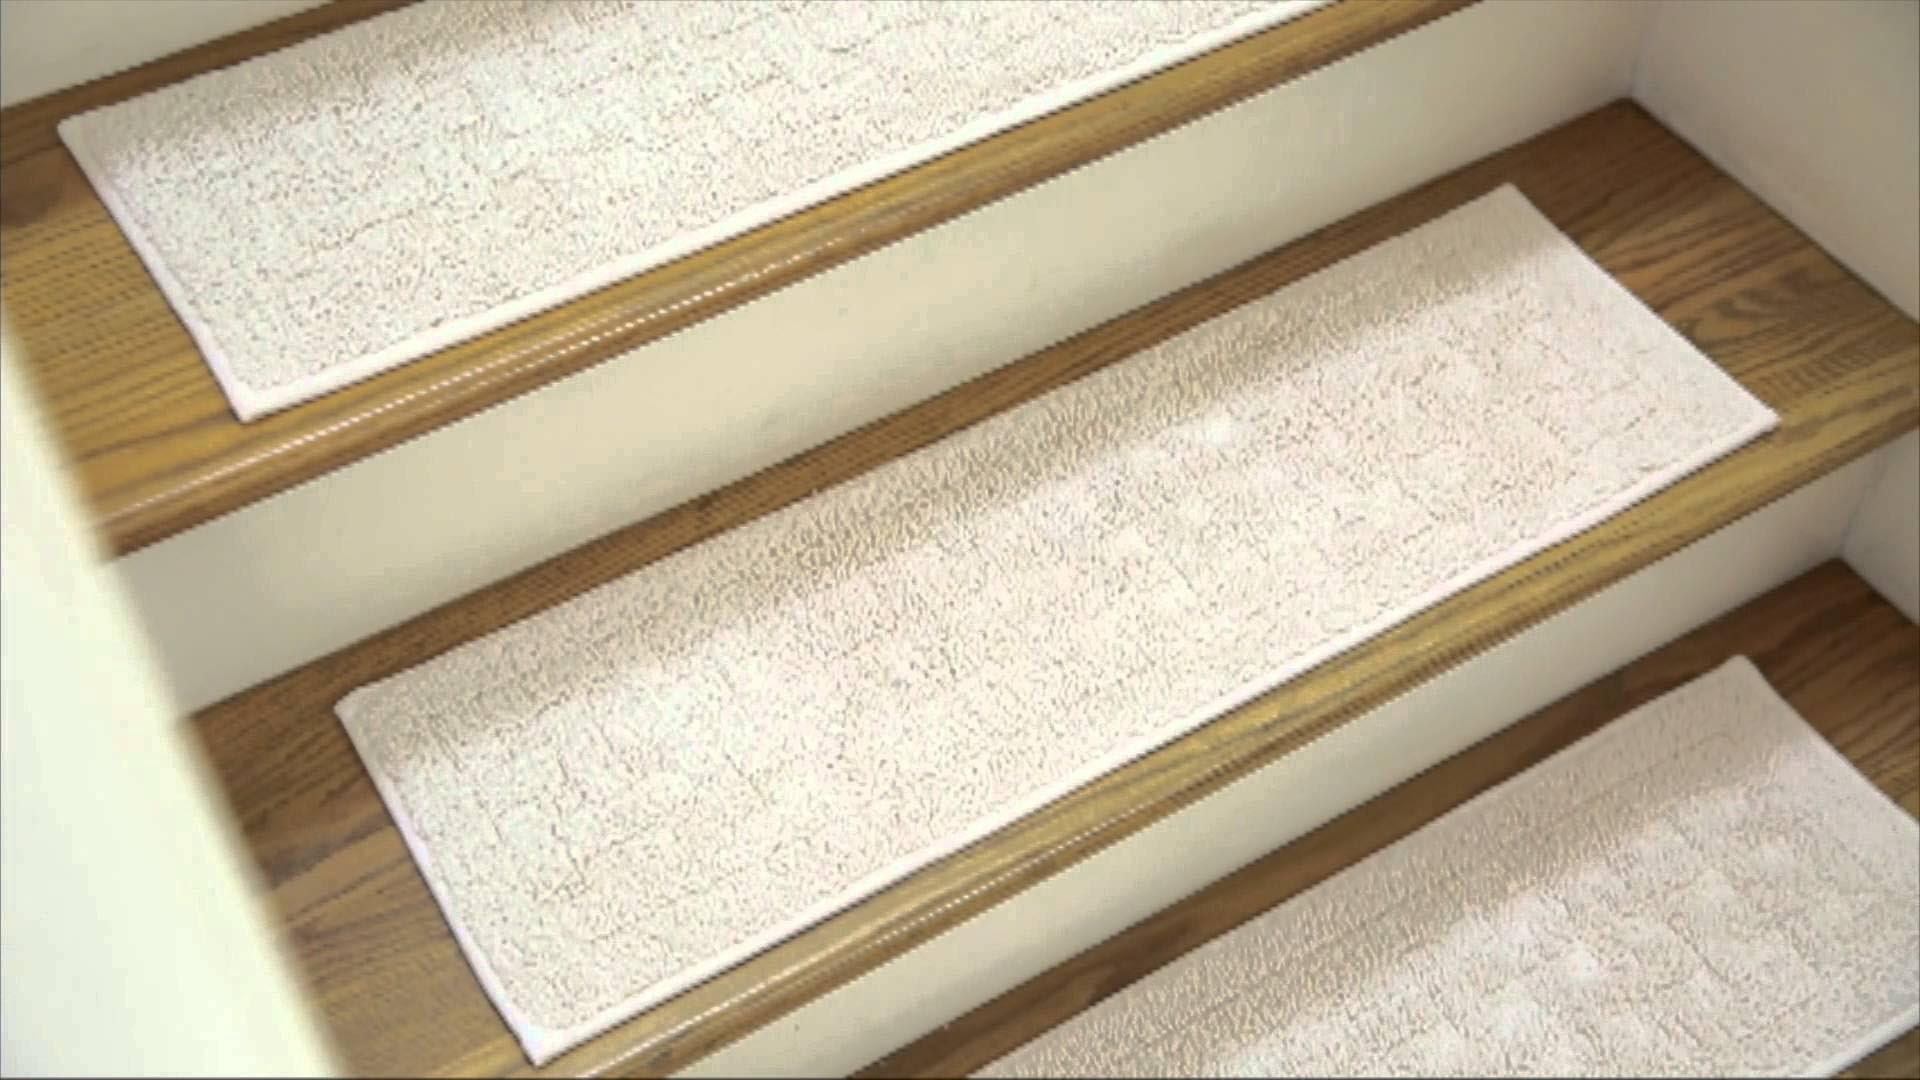 Flooring Pretty Stair Treads Carpet For Stair Decoration Idea Intended For Indoor Stair Tread Mats (View 13 of 20)